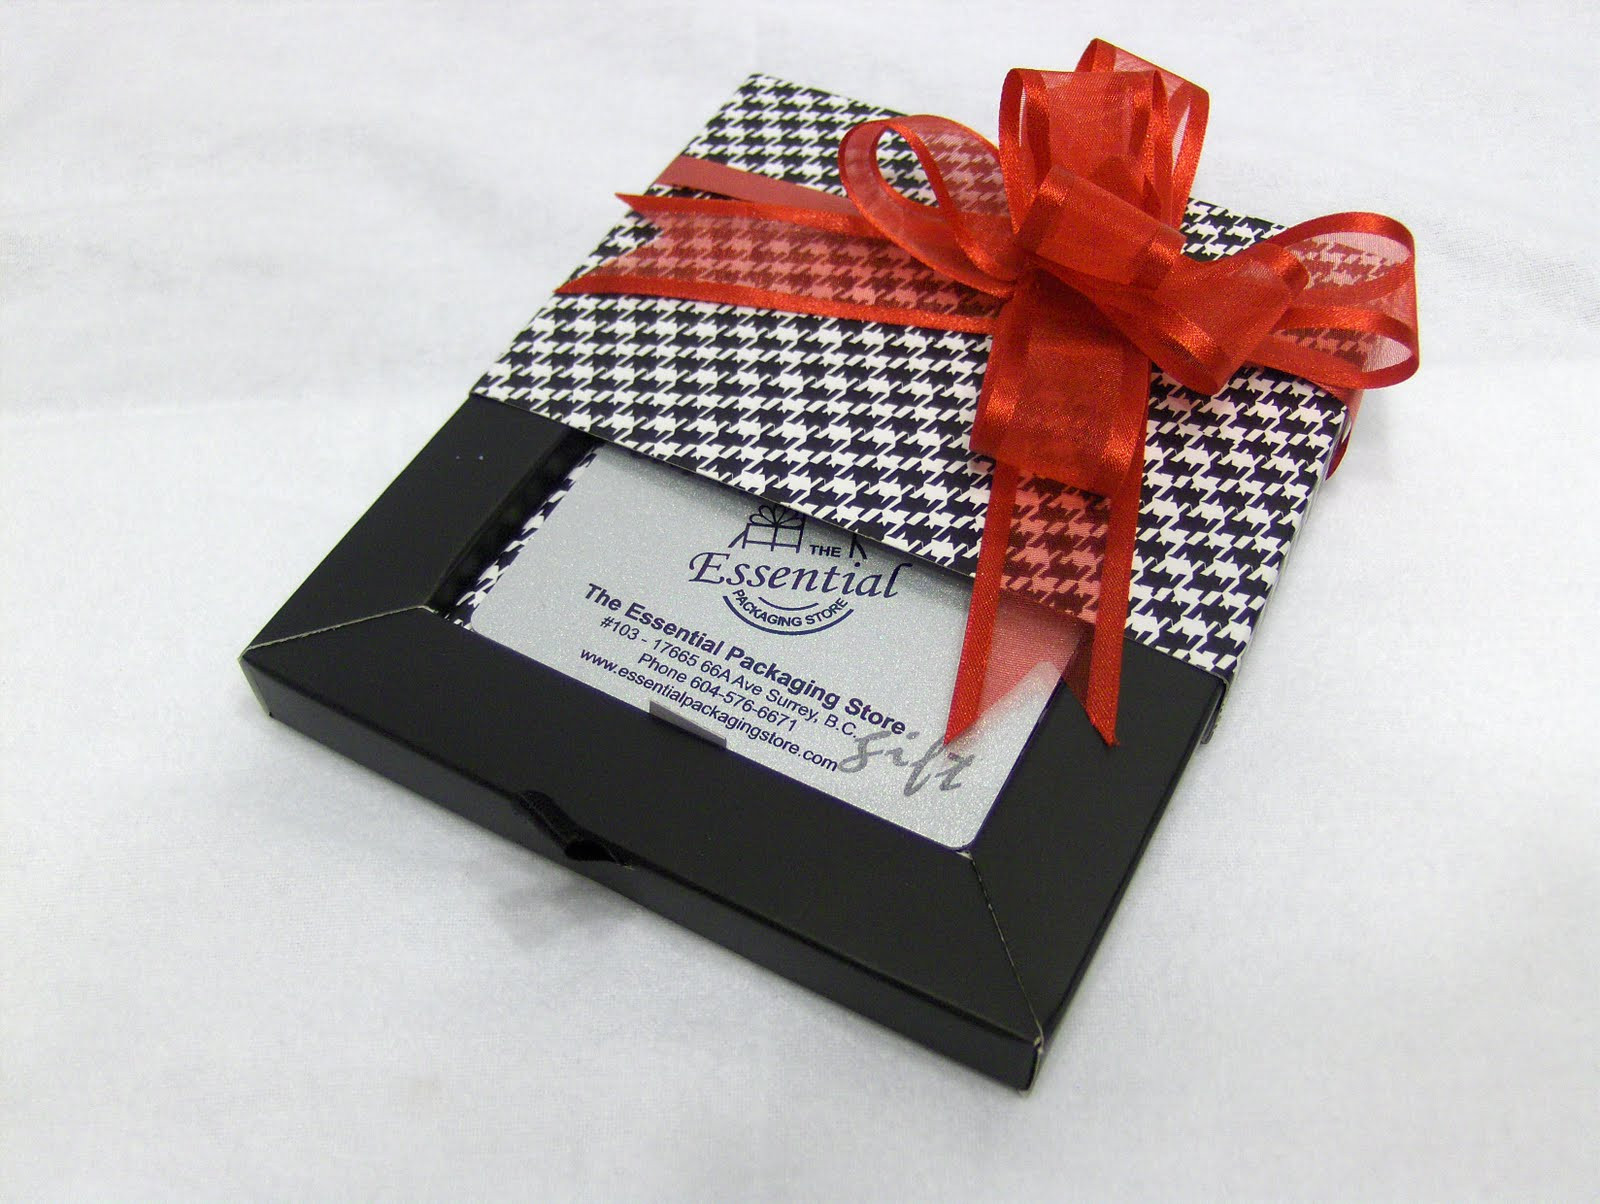 Best ideas about Gift Card Wrapping Ideas . Save or Pin The Essential Packaging Store Blog Holiday Wrapping Now.